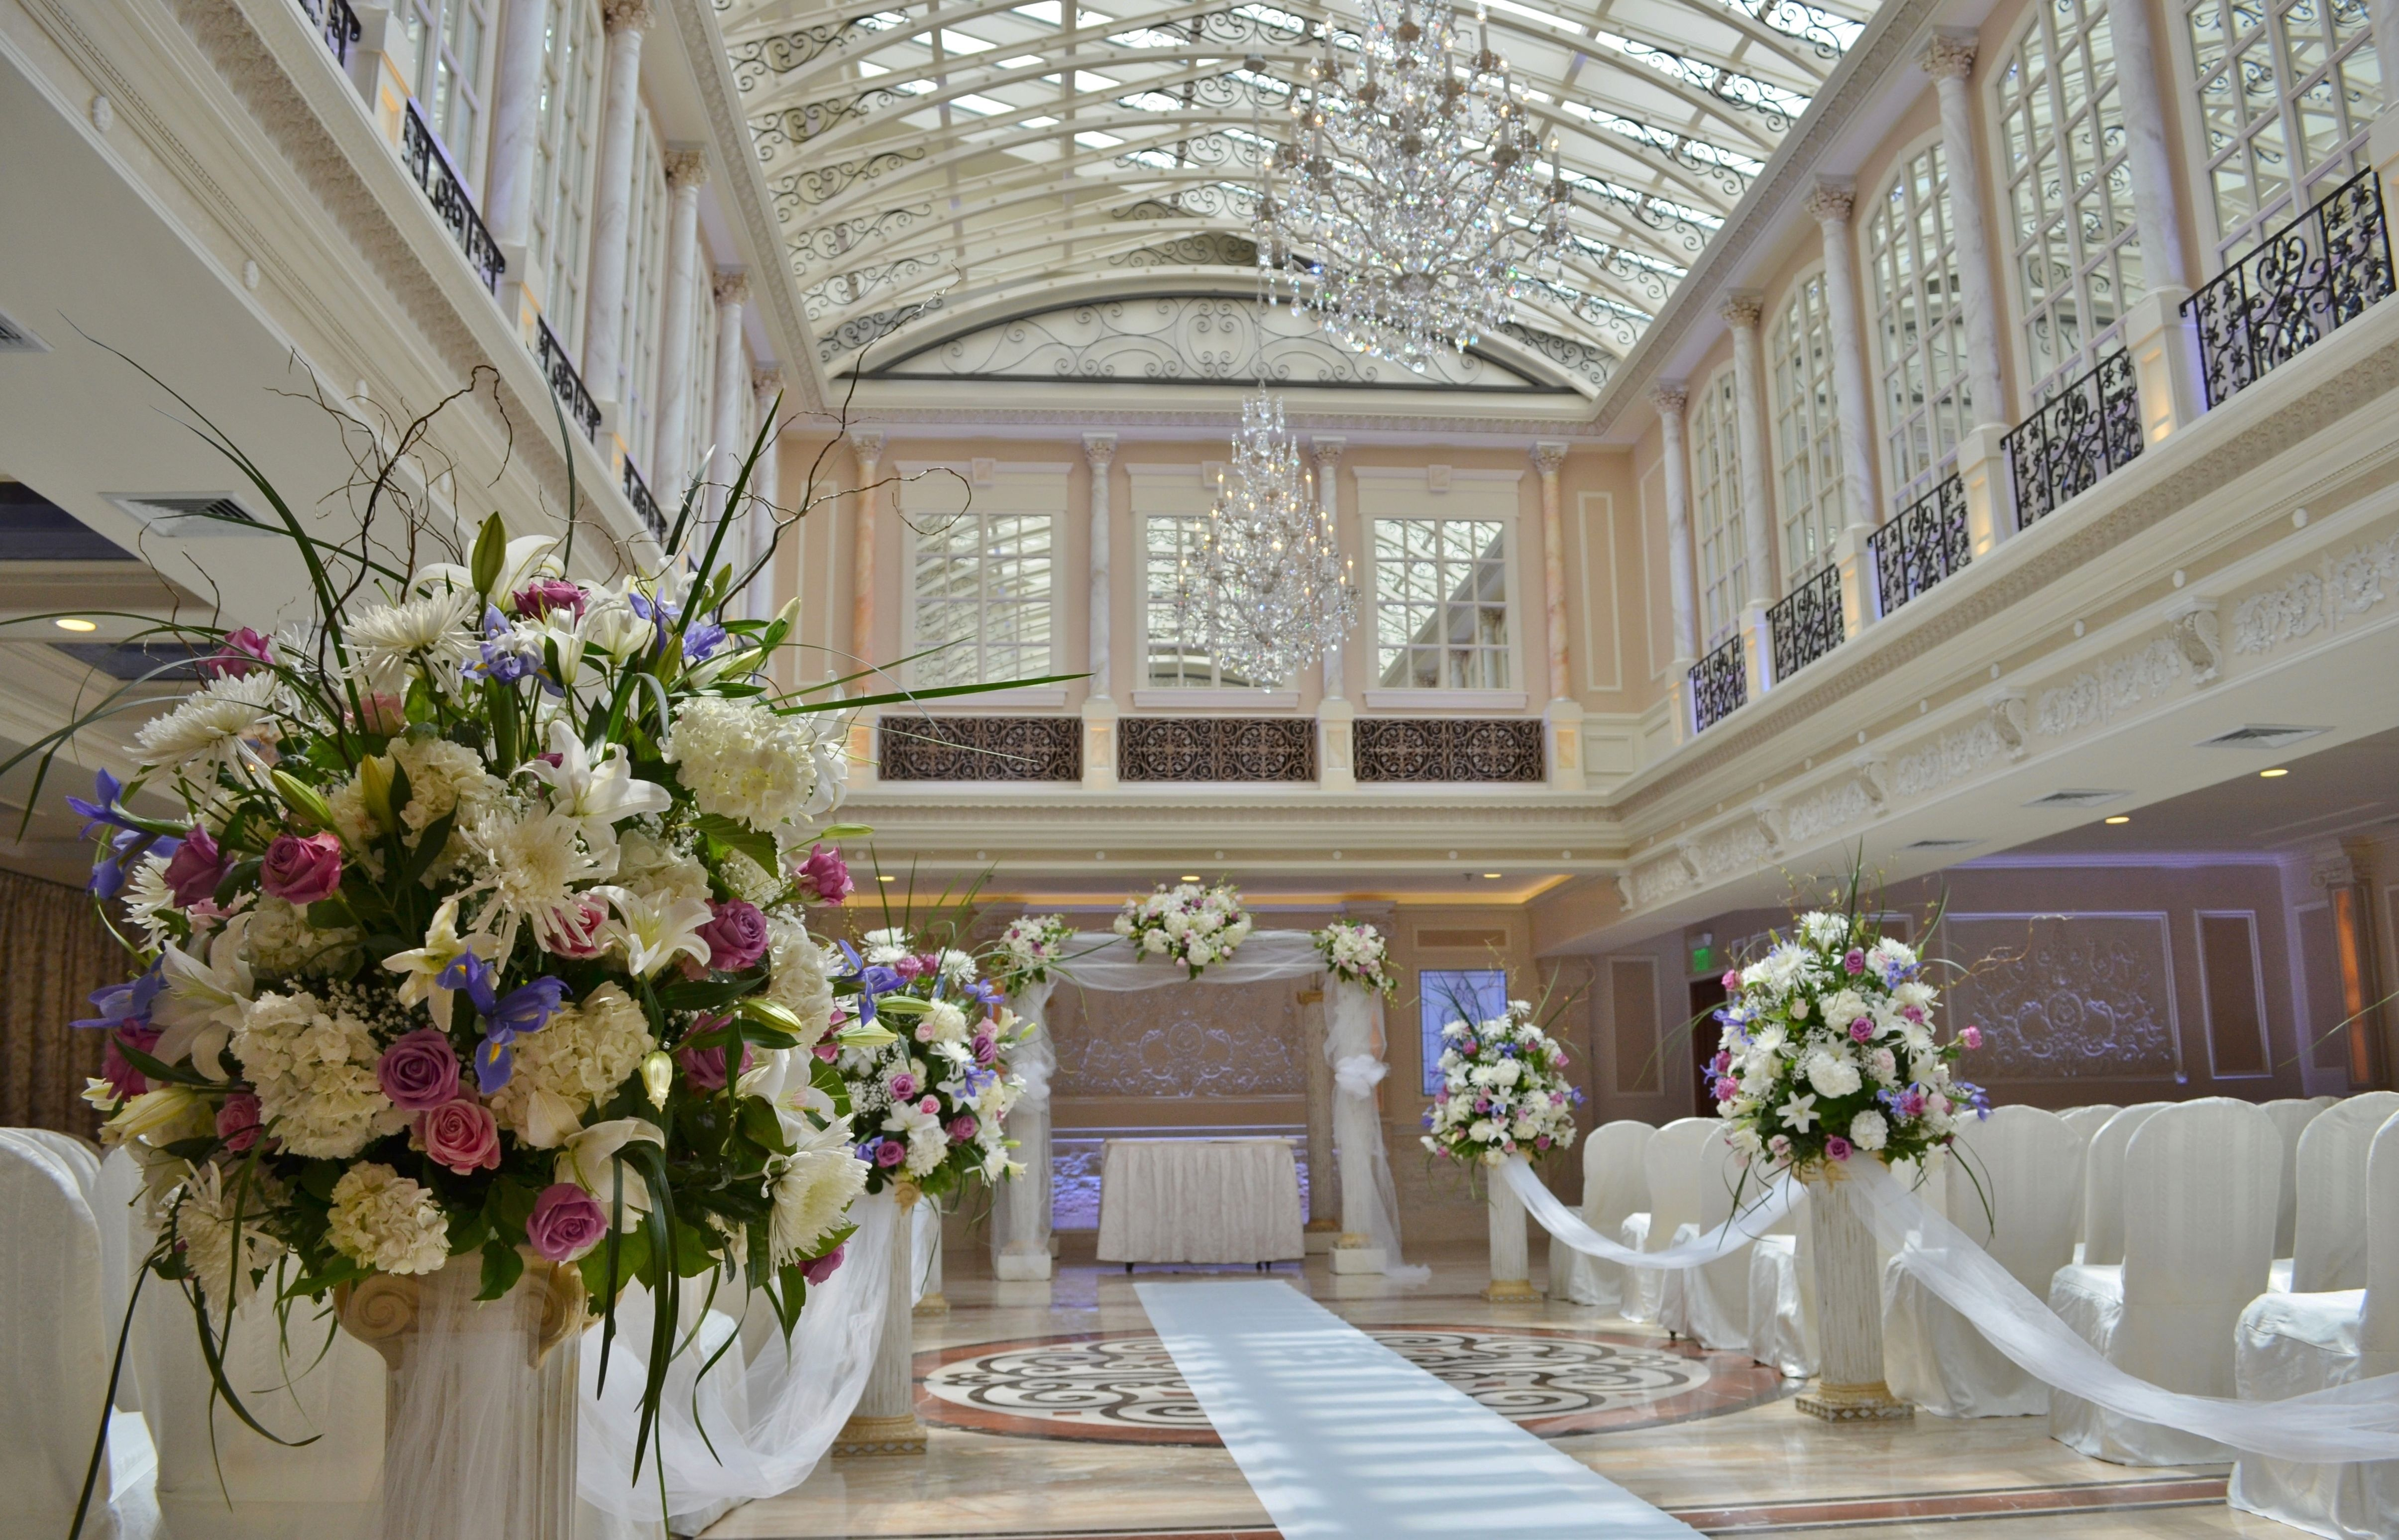 Indoor Or Outdoor Wedding Ceremony Some Facts To Help You: Combine The Elegance Of An Outdoor Ceremony With The